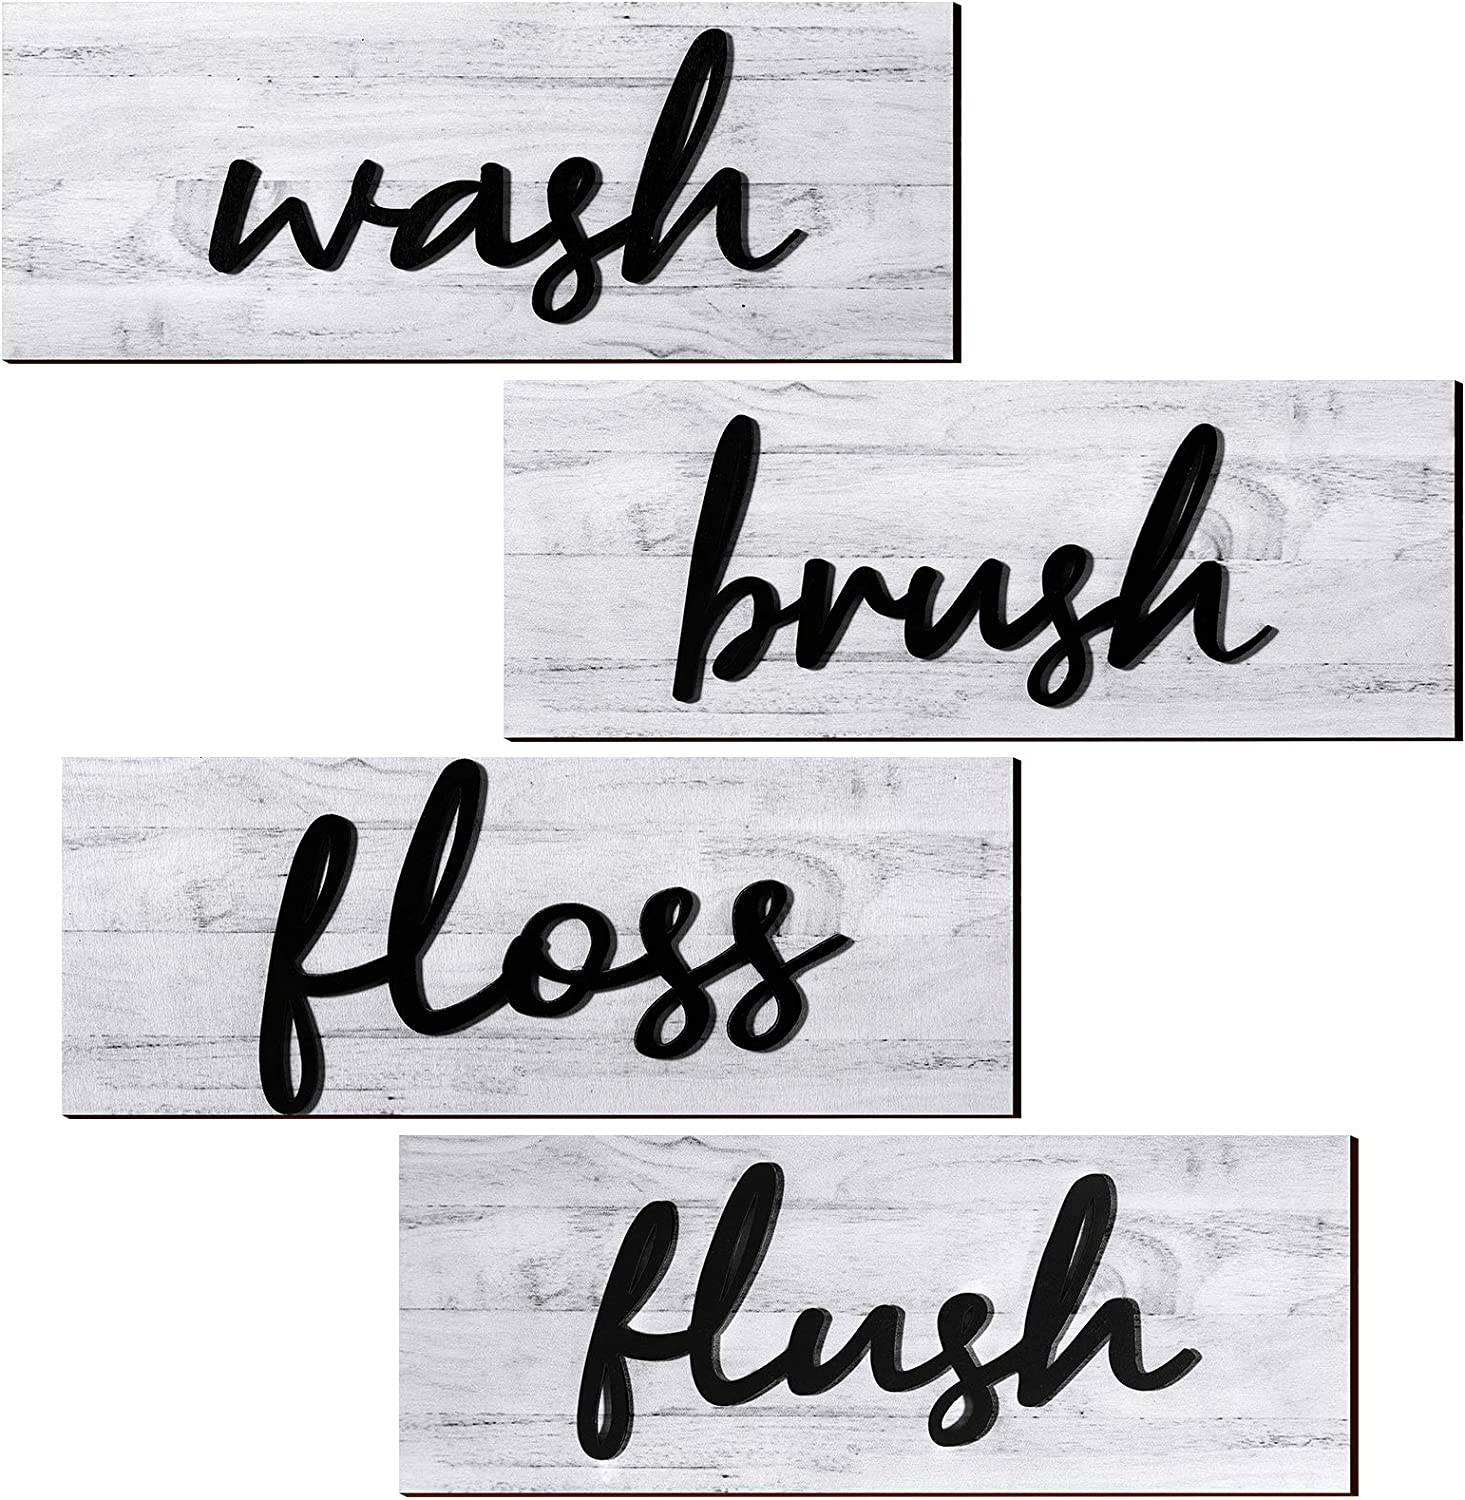 4 Pieces Farmhouse Bathroom Wall Decors Wash Brush Floss Flush Signs Rustic Hanging Wooden Signs Primitive Bathroom Wall Arts Vintage Wooden Decorations for Home Laundry Room Bathroom (White)